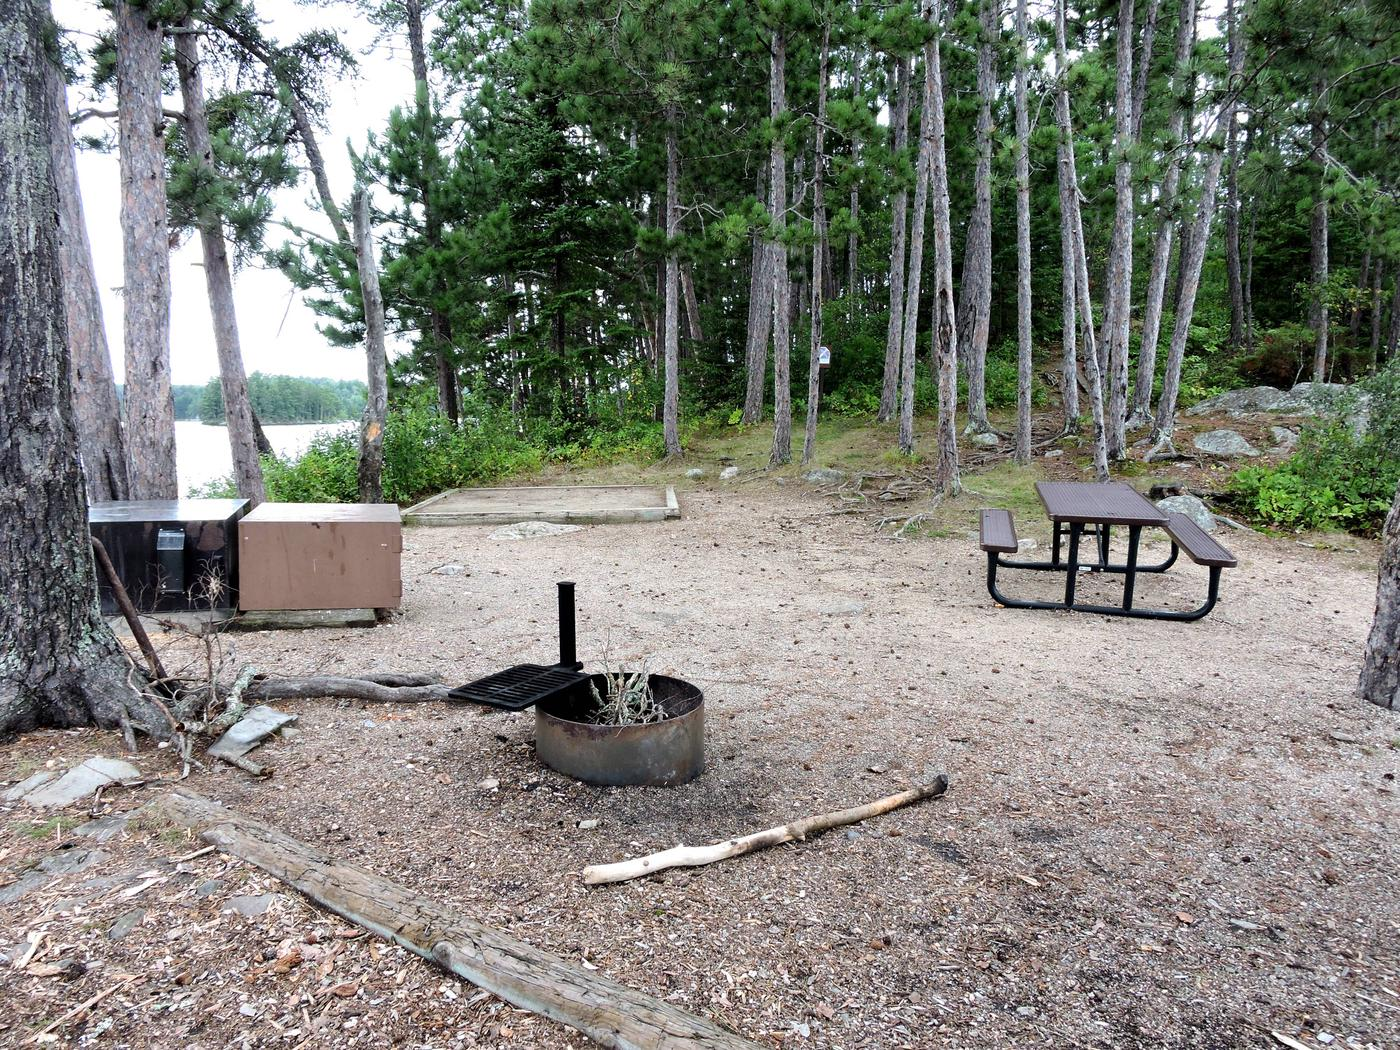 S15 - Reef IslandView of campsite